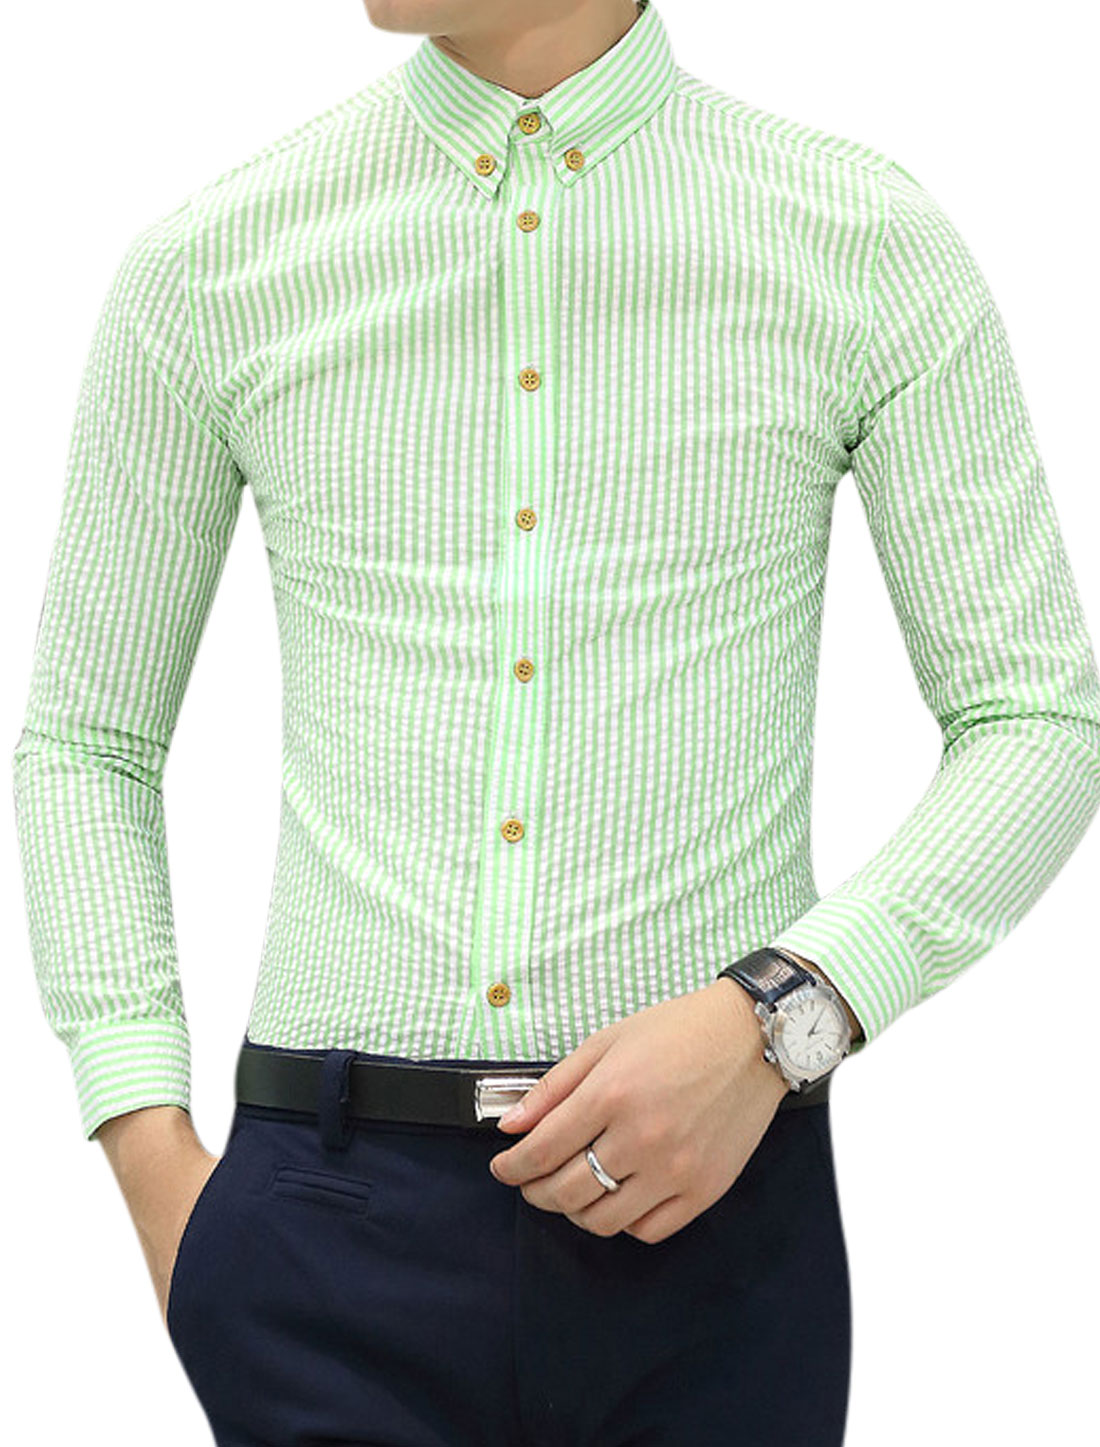 Man Stripes Button Cuffs Long Sleeves Green White Casual Shirt S